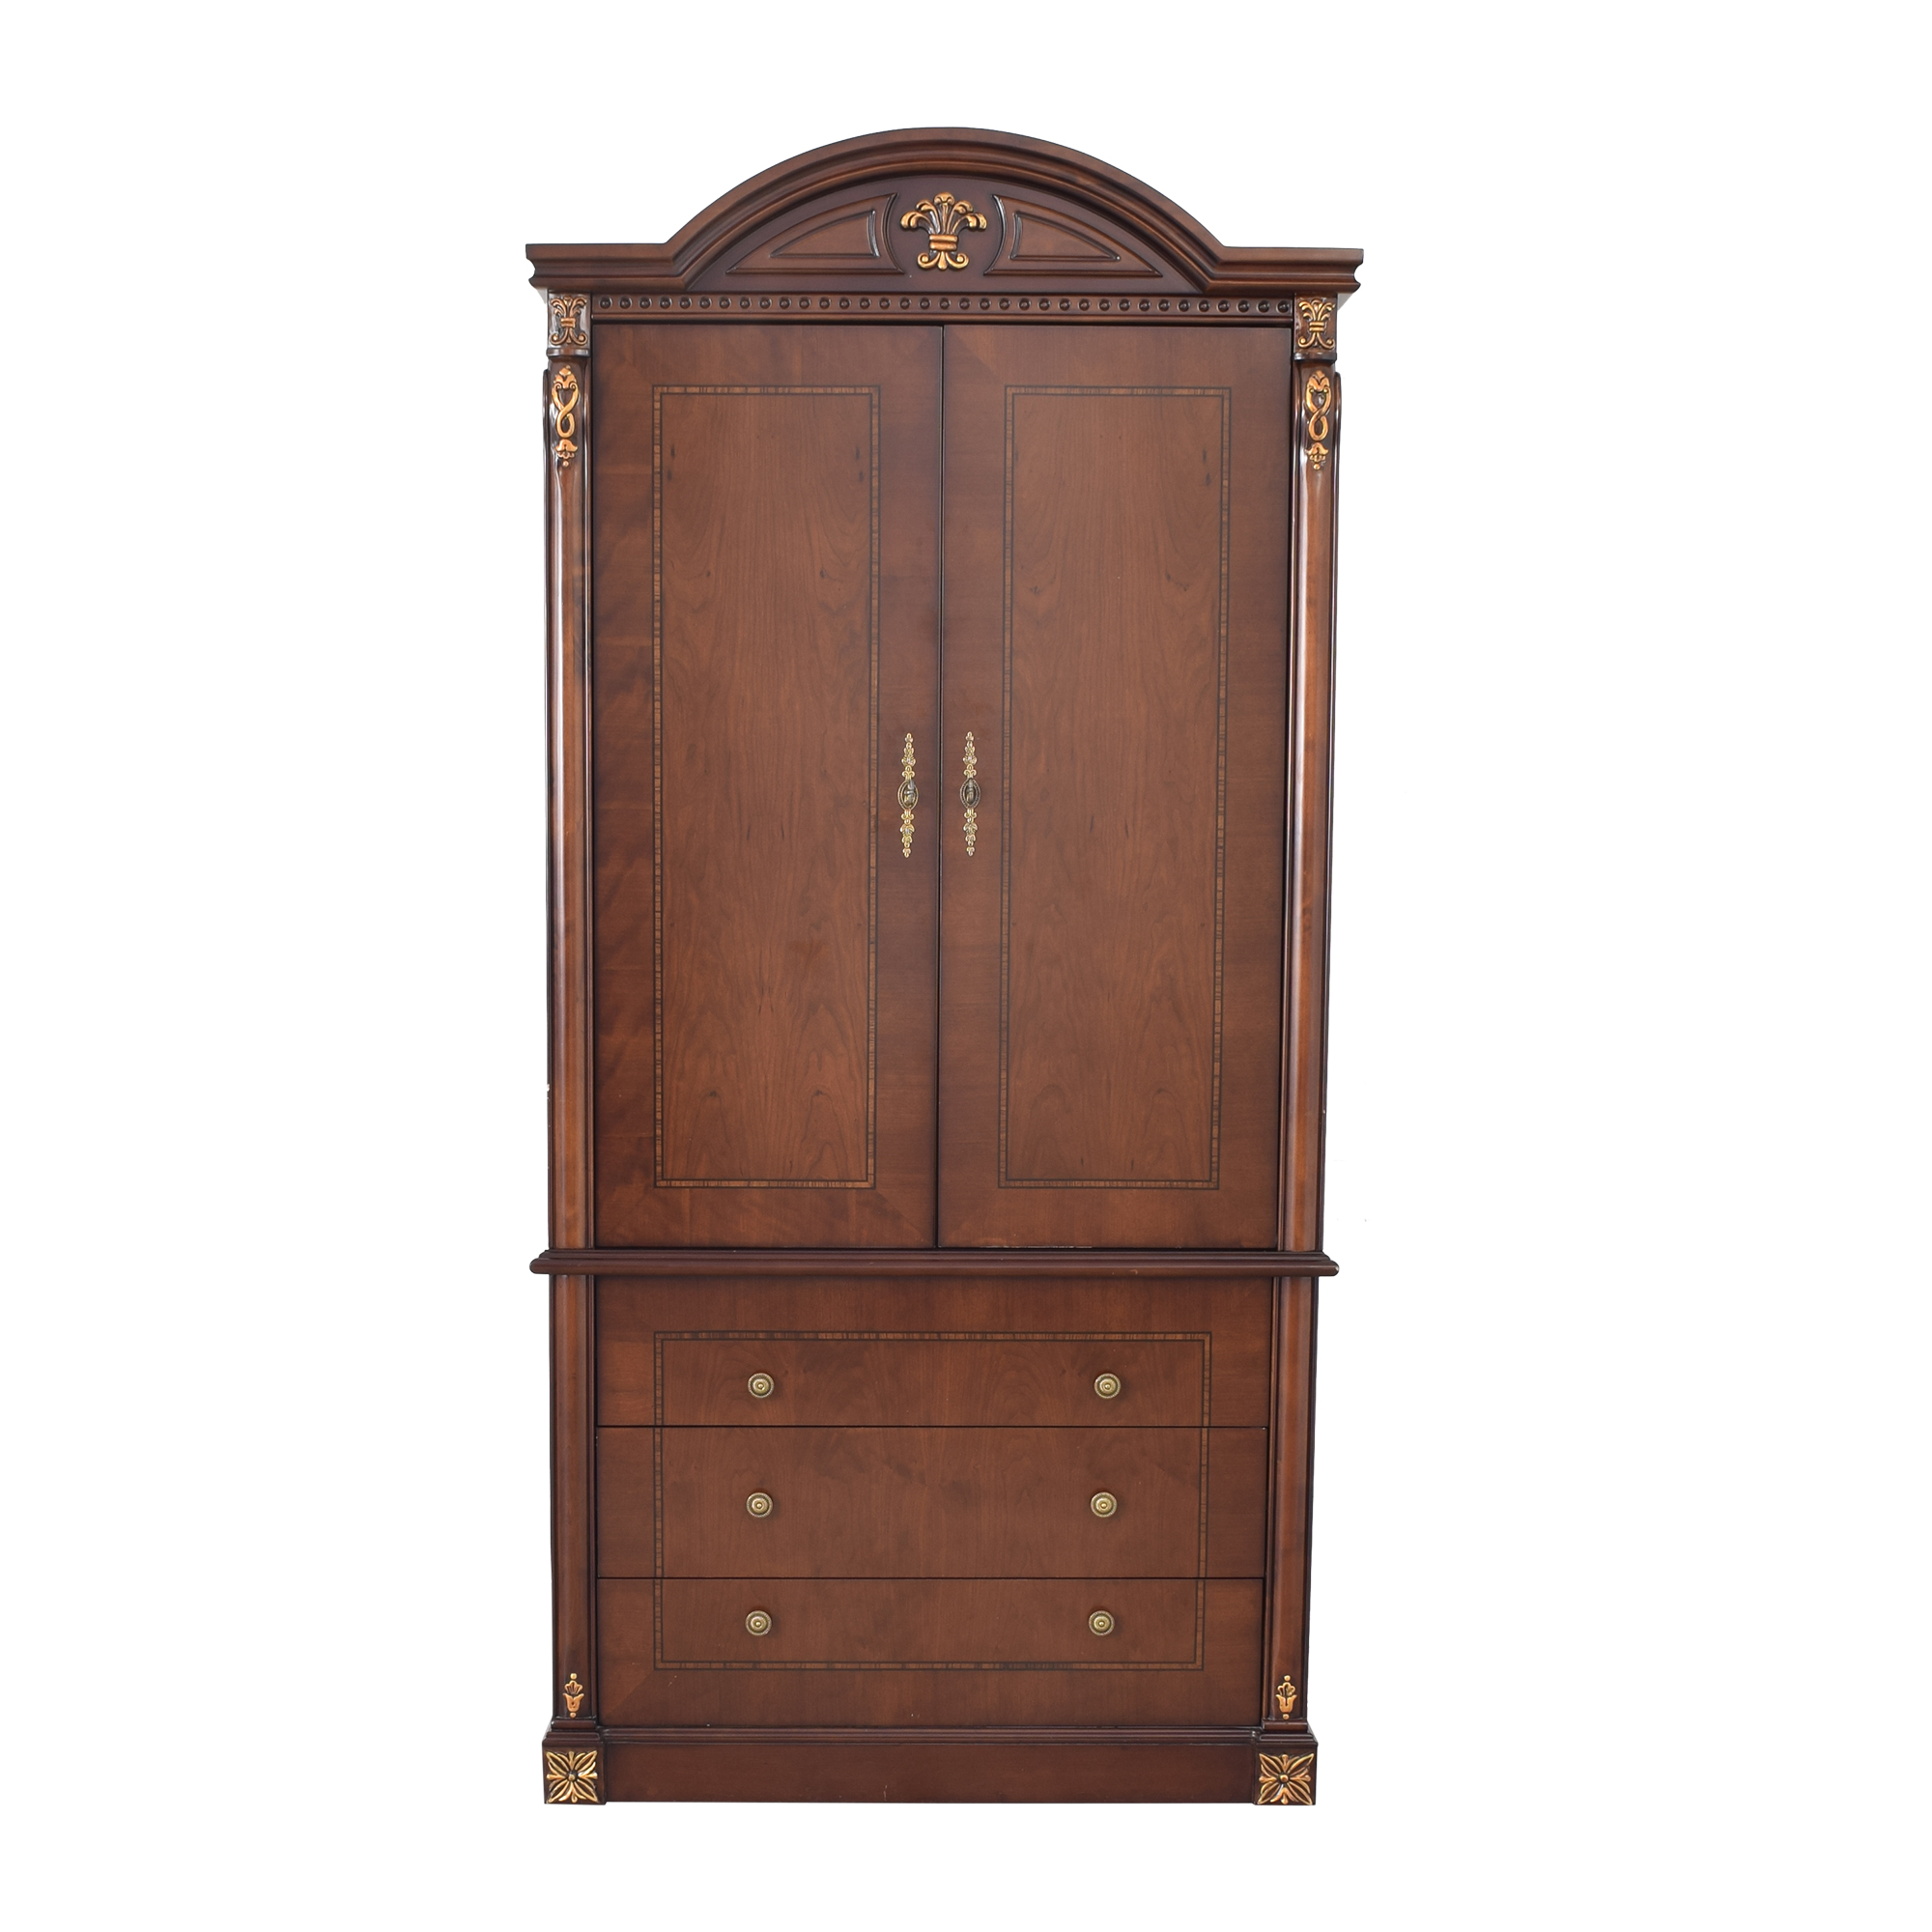 Chippendale Style Wardrobe used